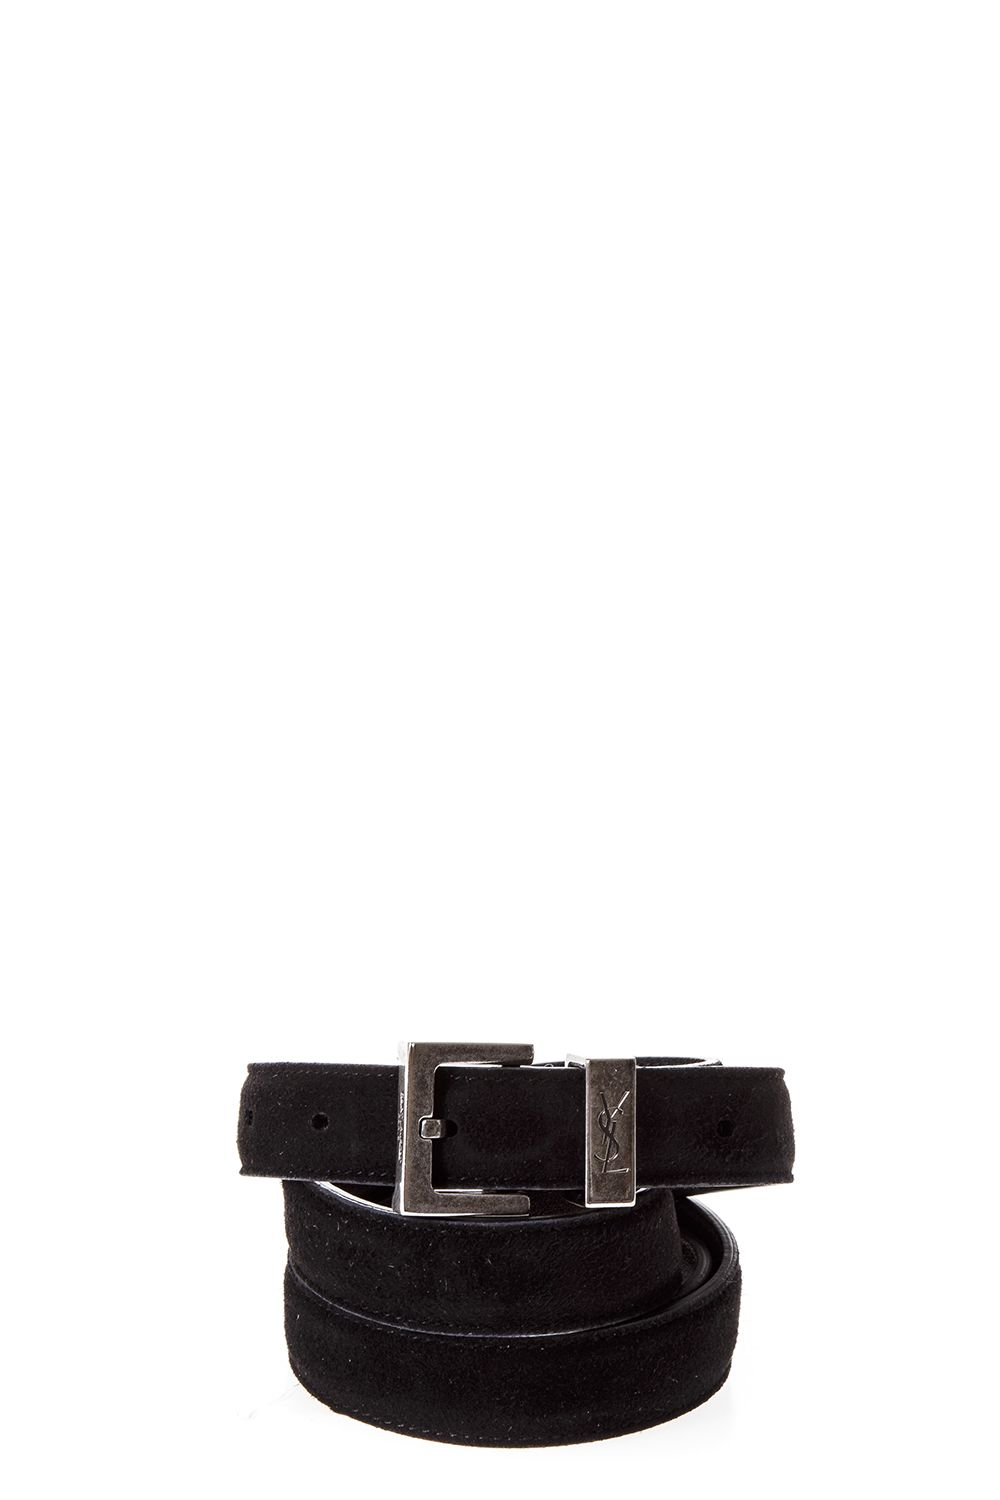 Saint Laurent Monogram Passant Buckle Belt In Black Leather